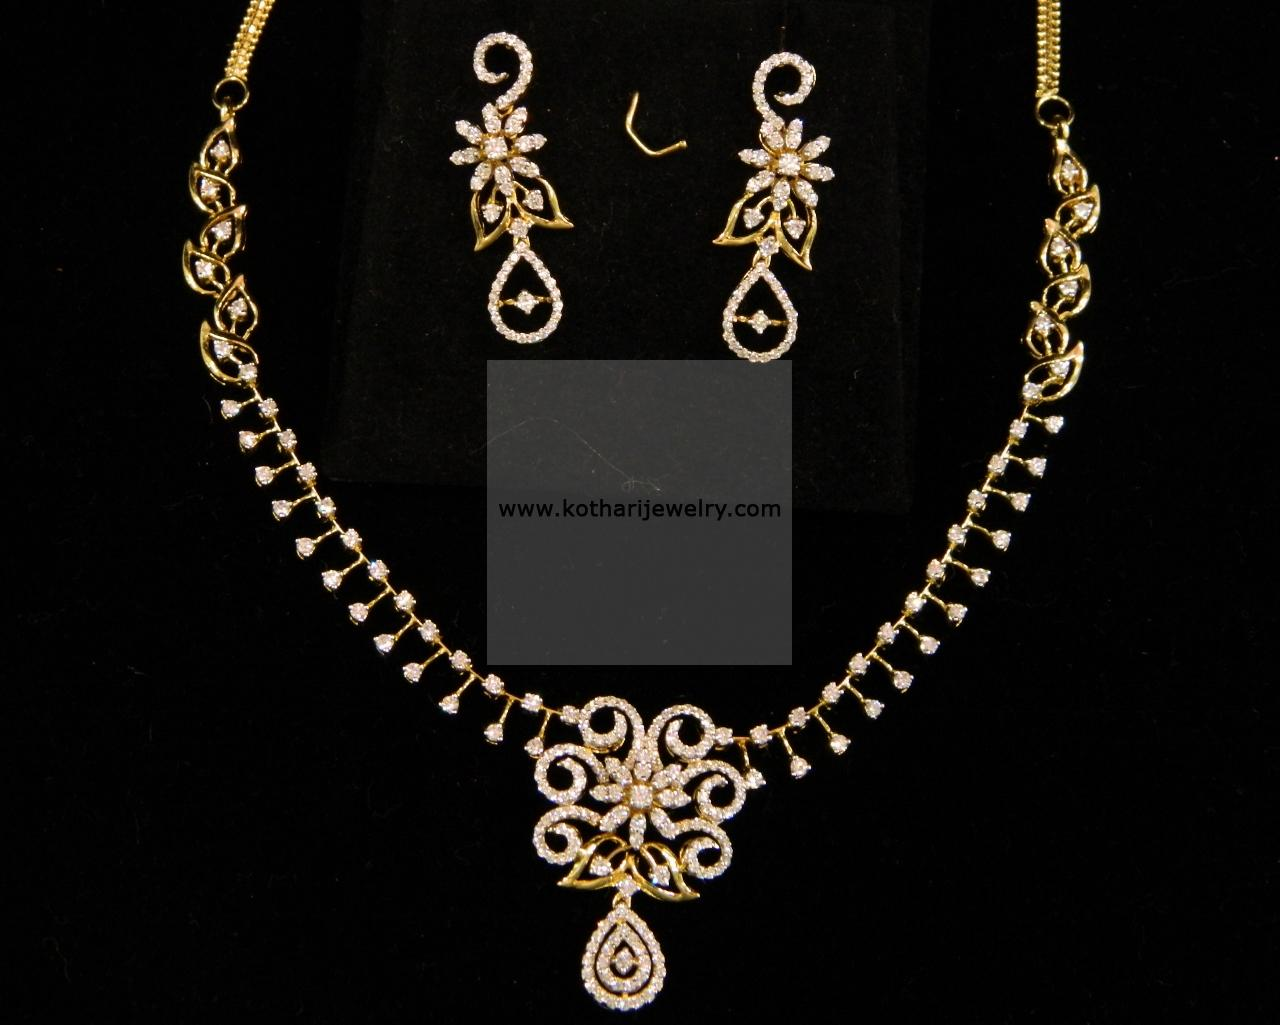 necklace bridal a for vvs intended india greatest set jewelry diamond indian